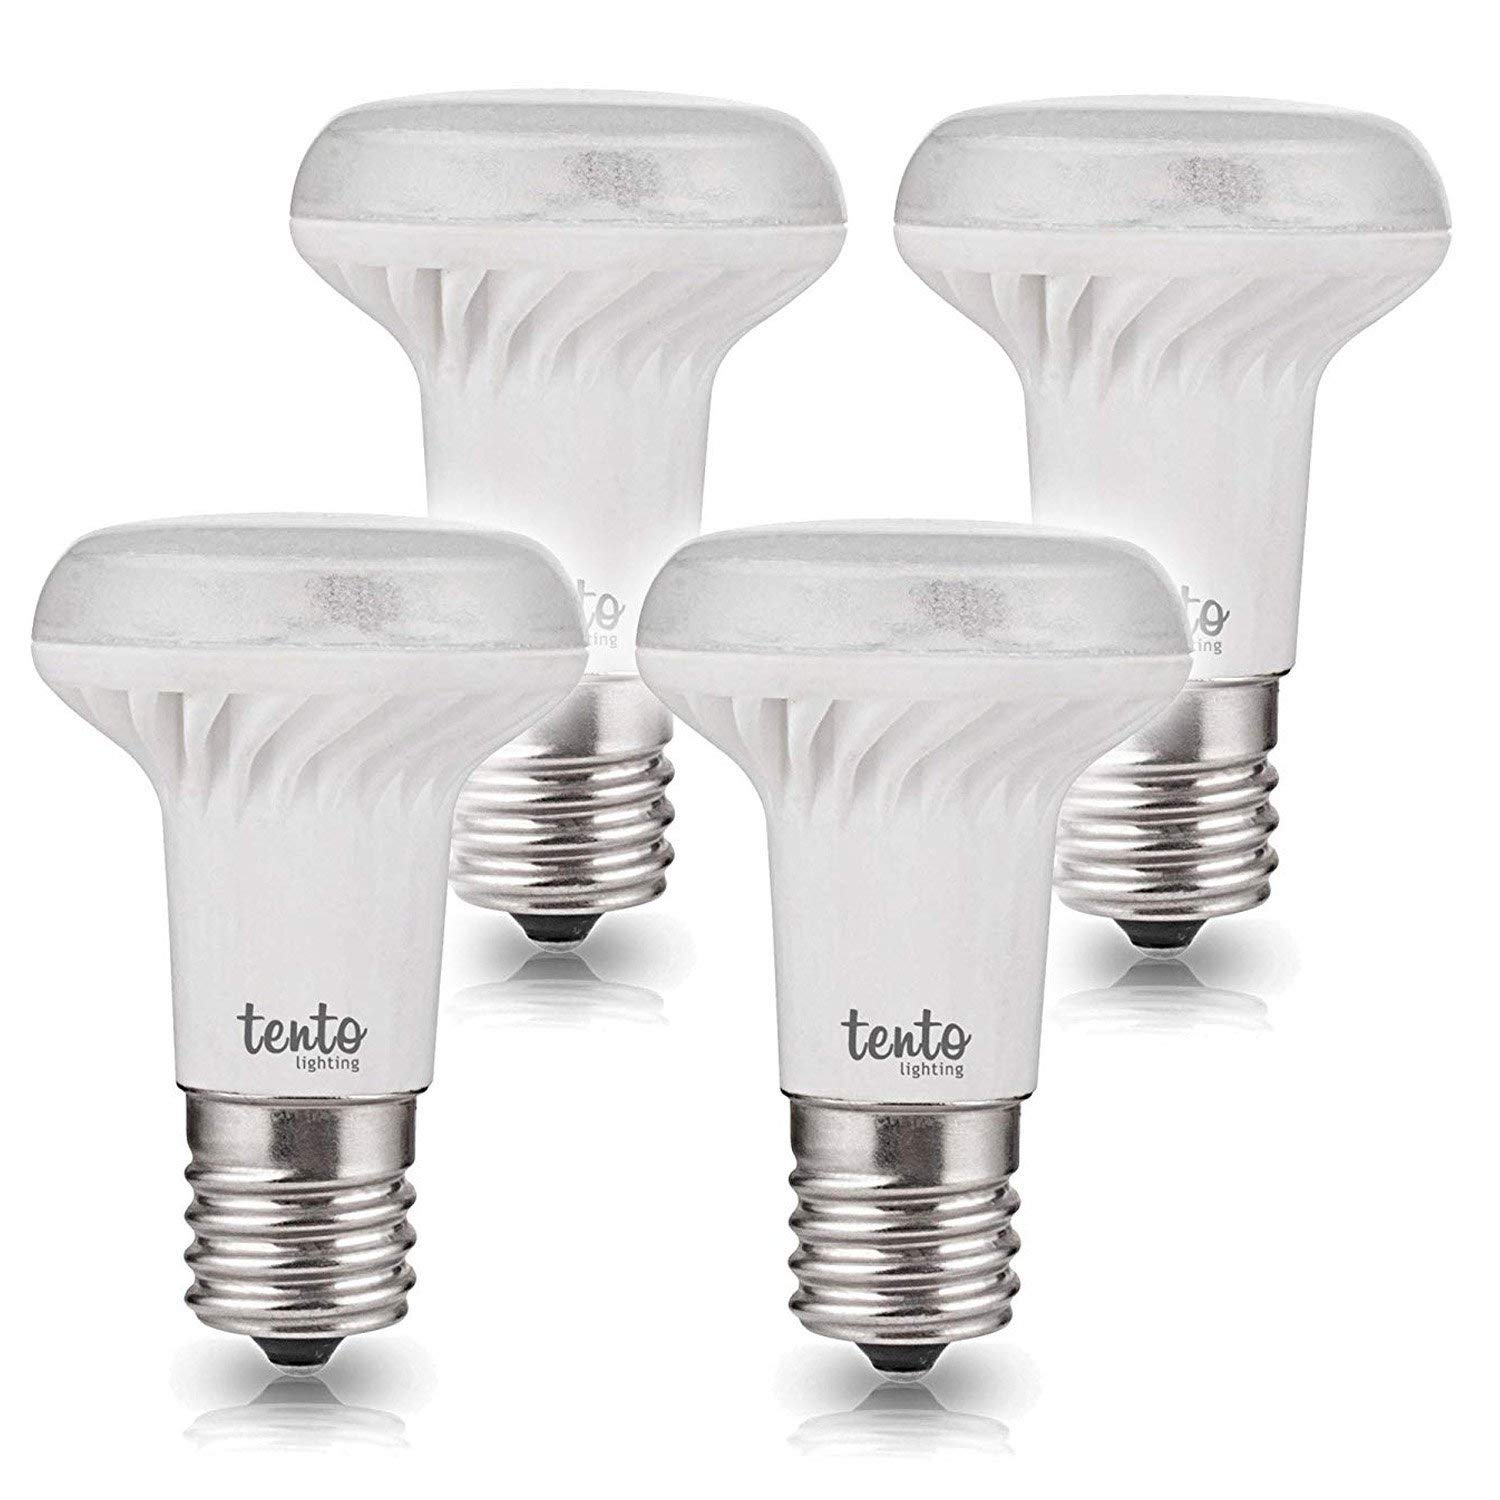 b53cc0a7335 Get Quotations · E17 Daylight LED Bulb R14 Reflectors R39 5000k 4w Dimmable  Intermediate Base LED Light Bulbs White